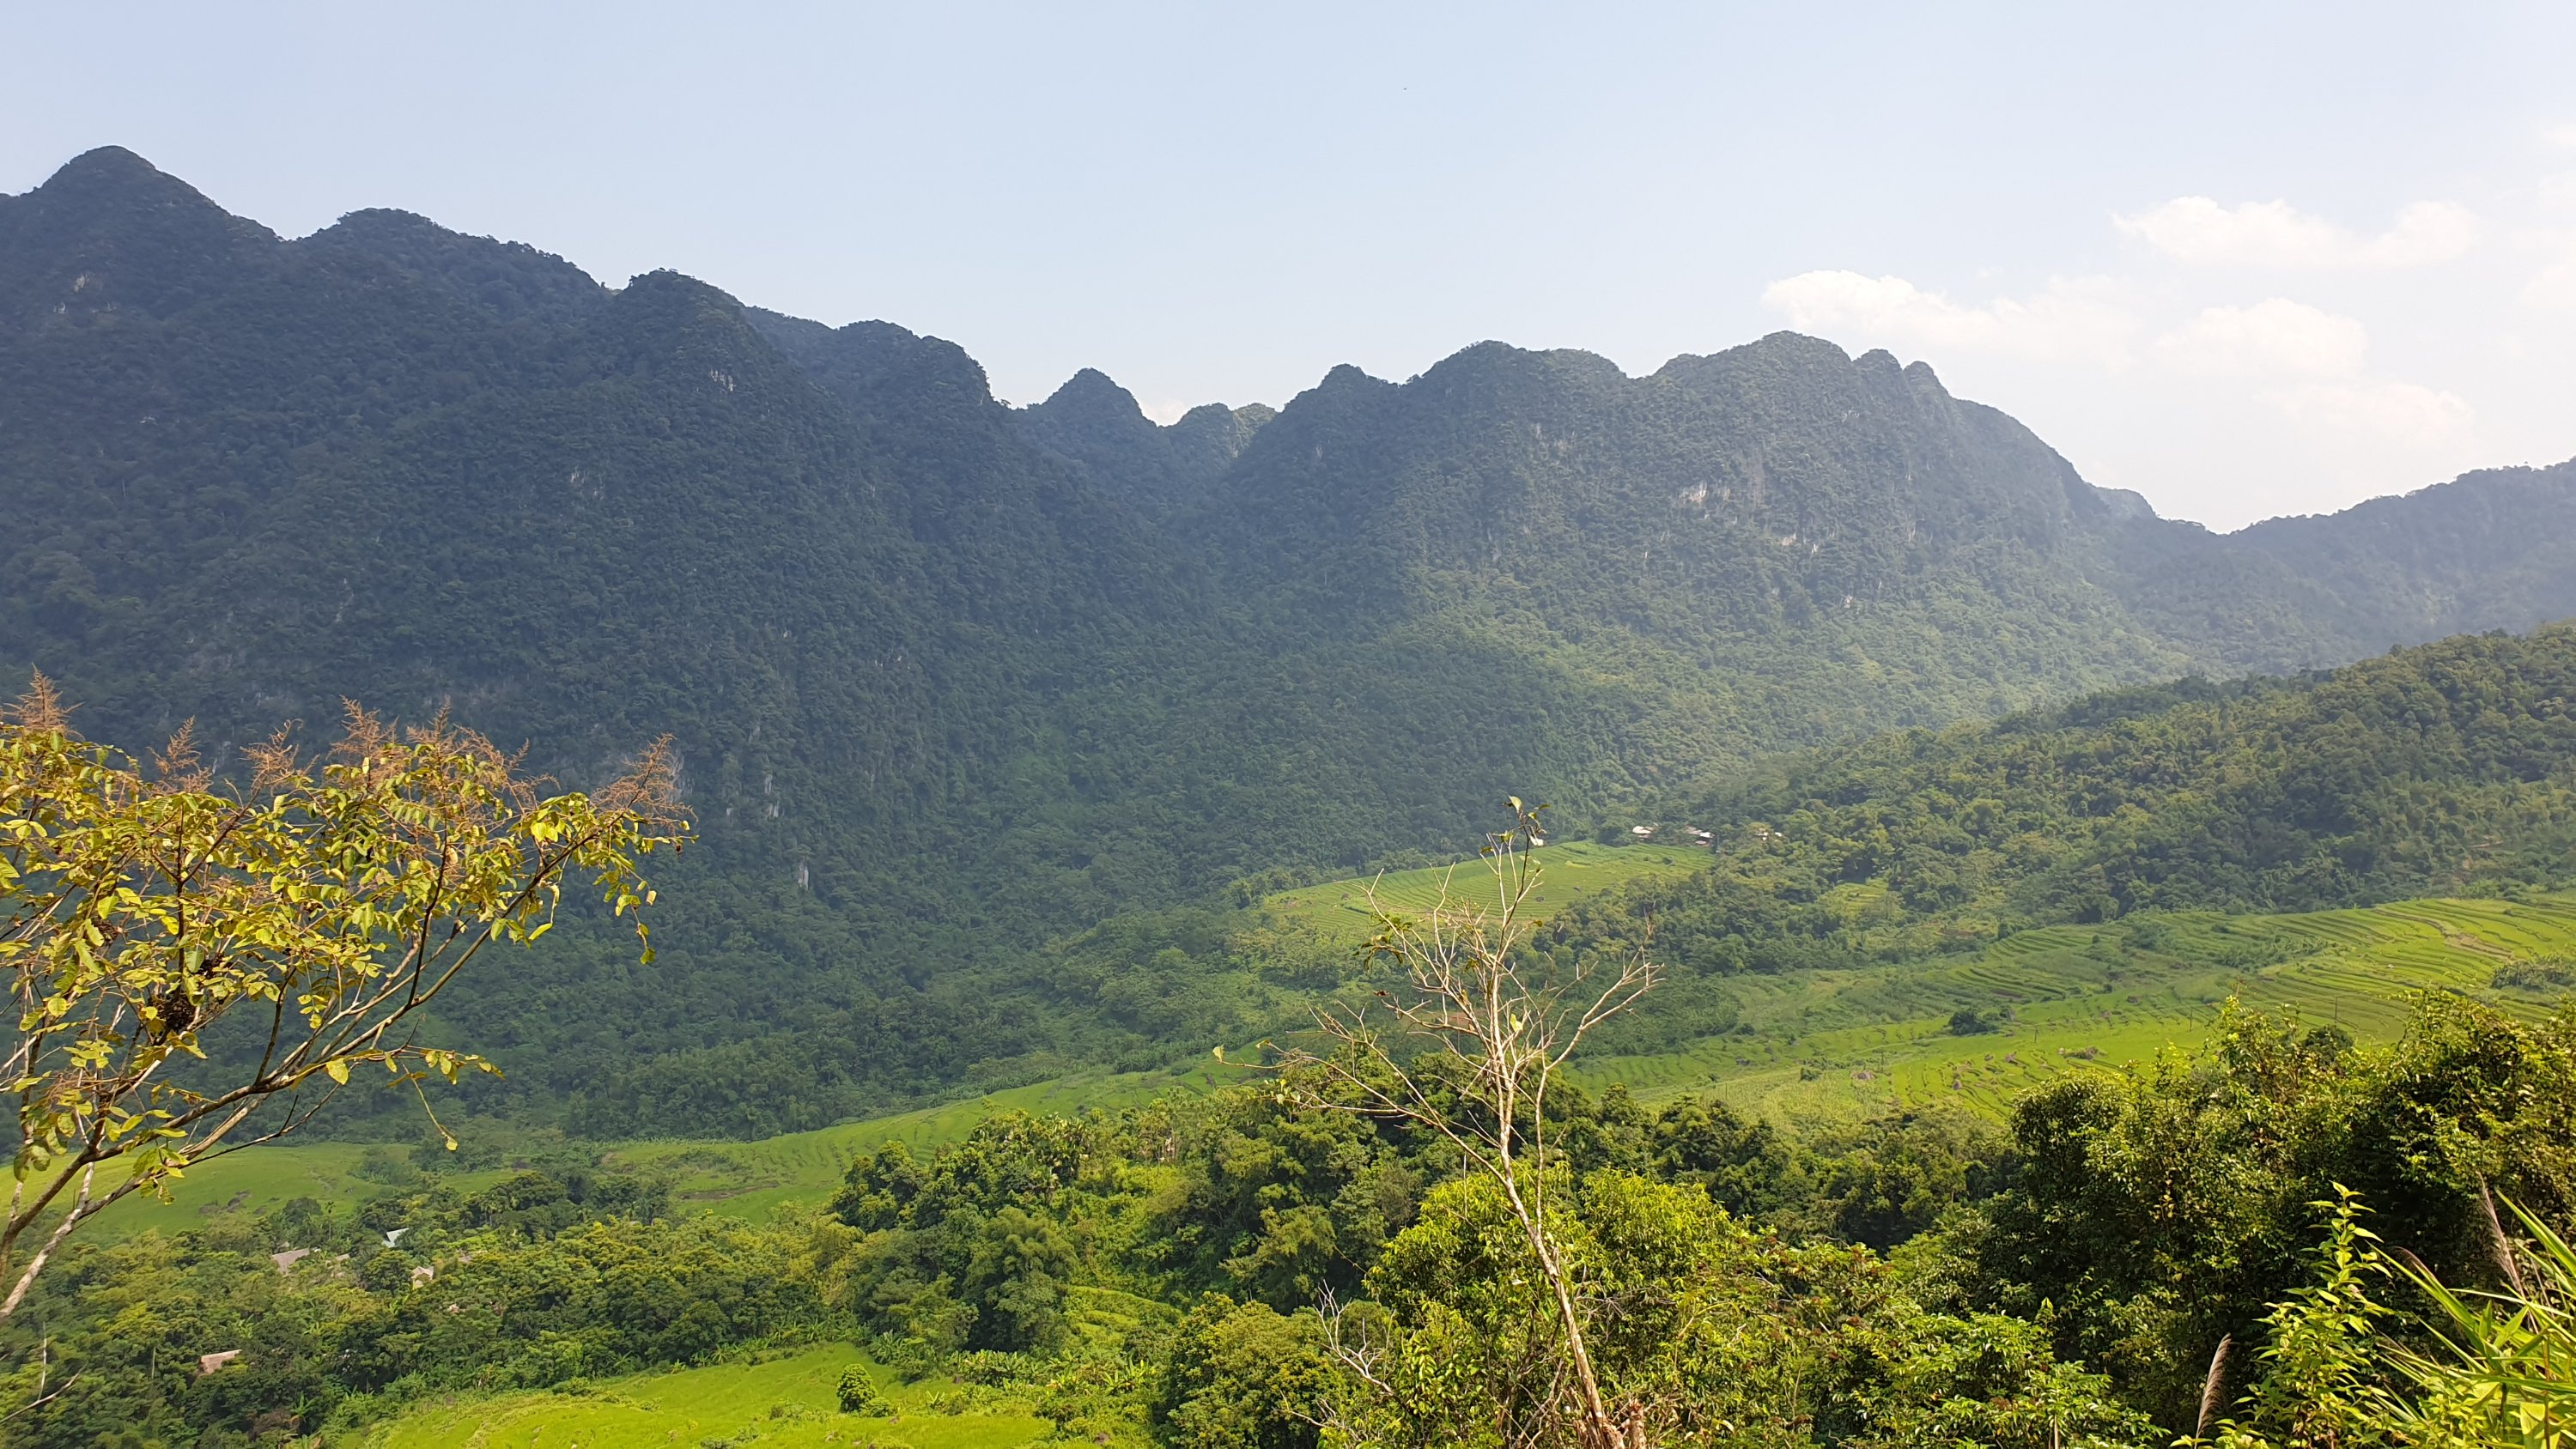 Pu Luong Nature Reserve - View of the valley and mountains in the distance with rice fields and trees